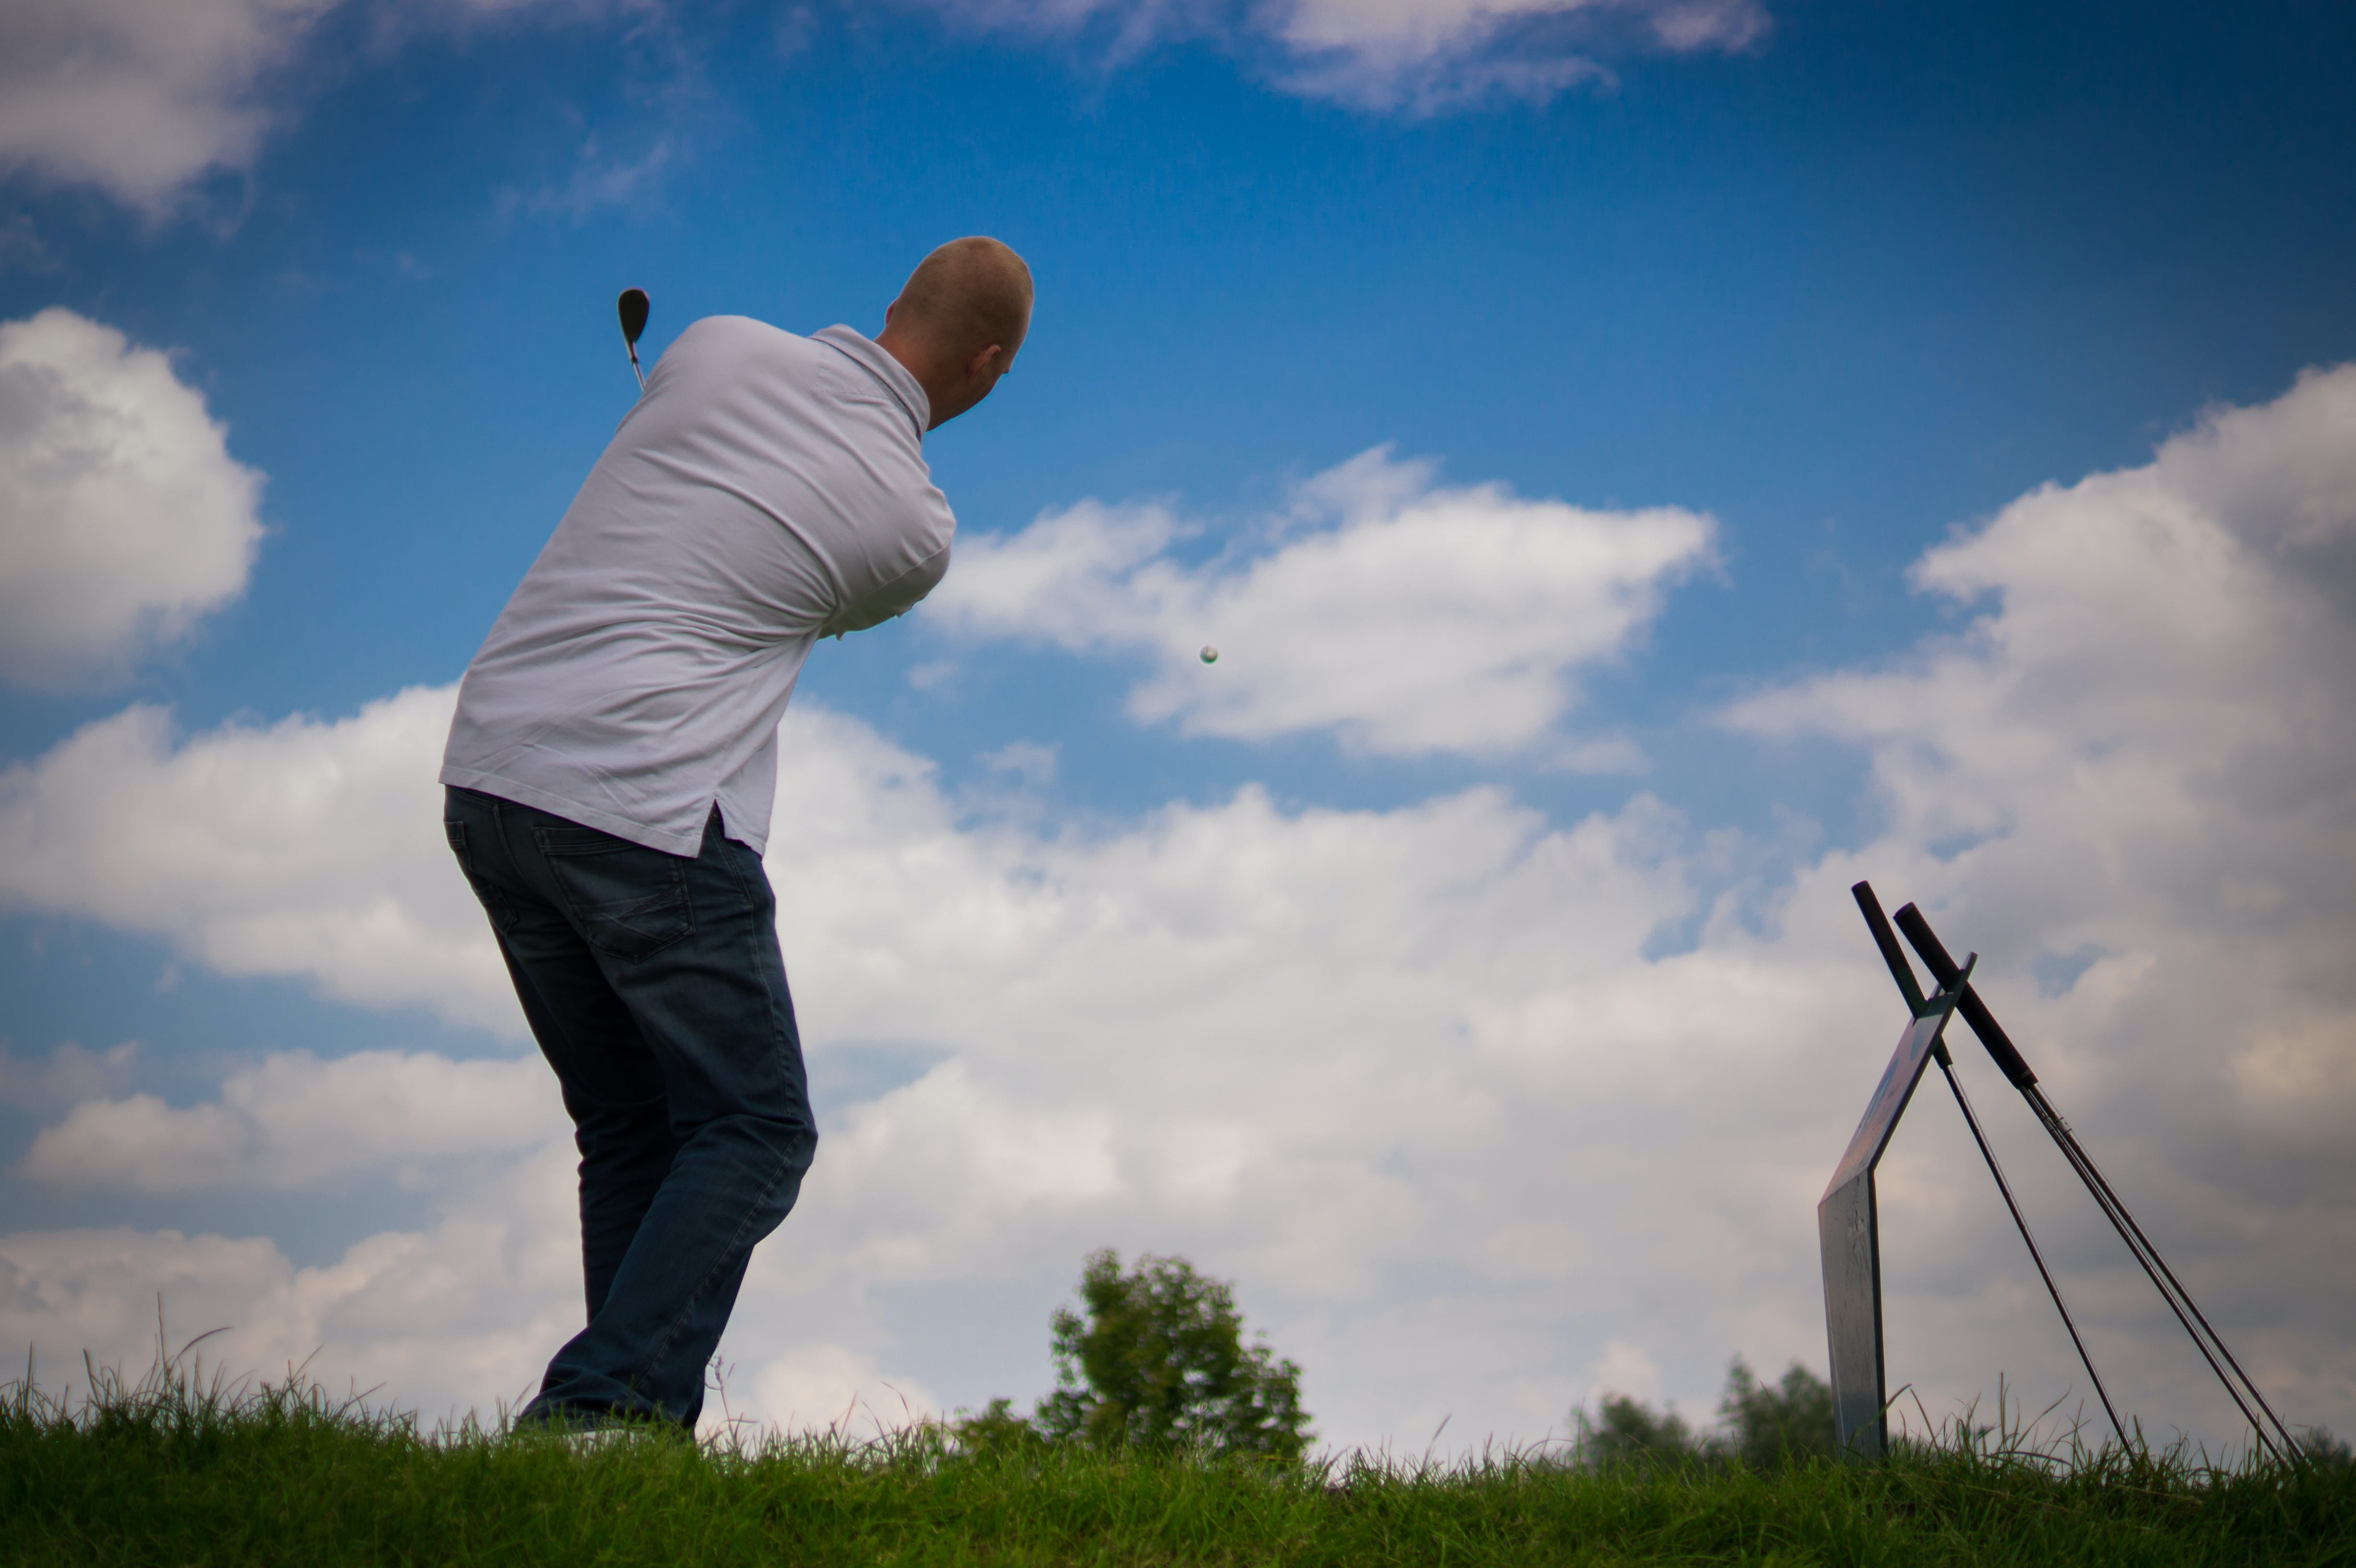 Man Striking Golf